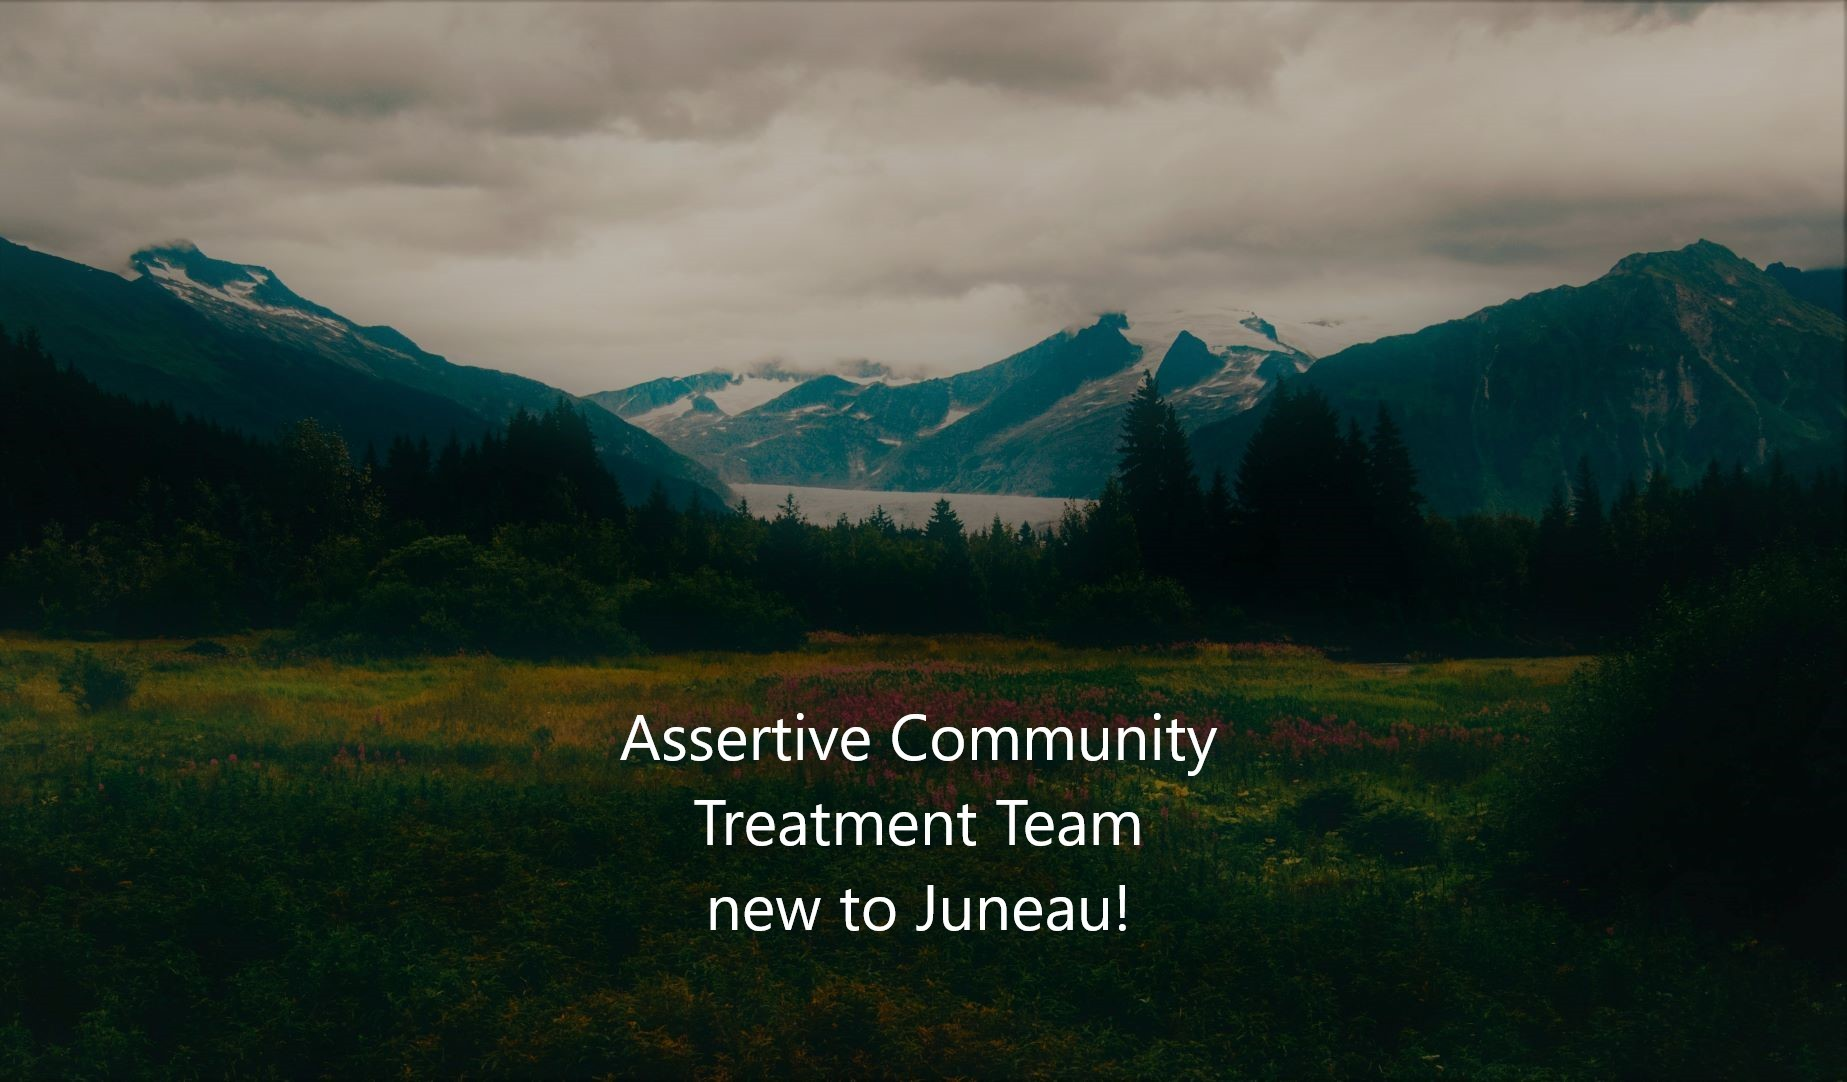 Assertive Community Treatment Team new to Juneau is in bold white text in the forefront, and a picture of Mendenhall Glacier is in the background.